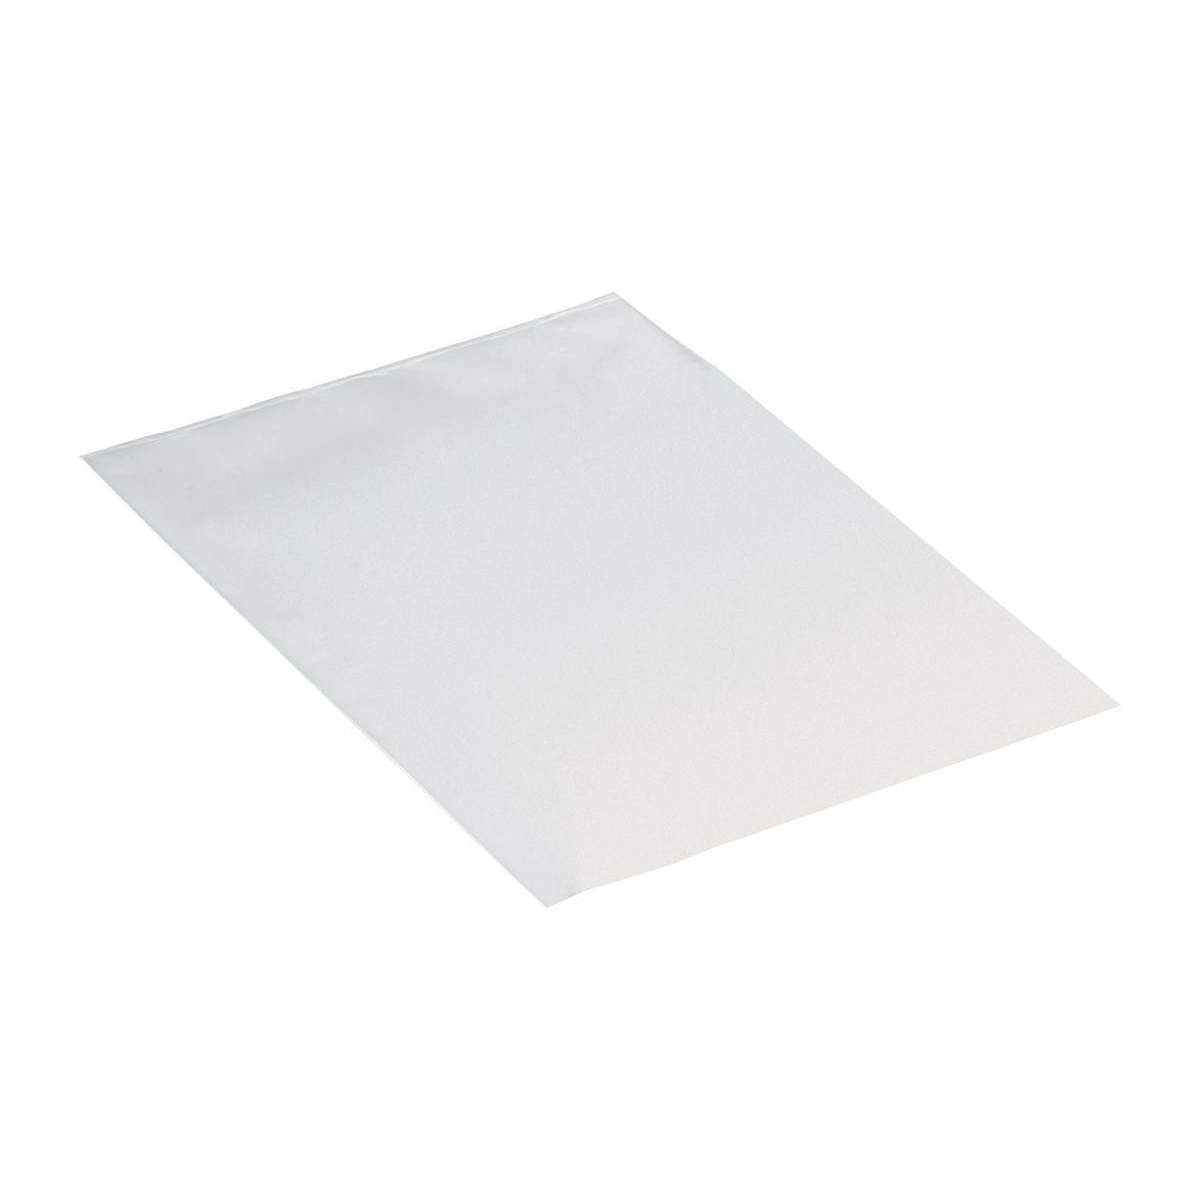 Image for Polythene Bags 300x450mm 30 Micron Clear [Pack 1000]